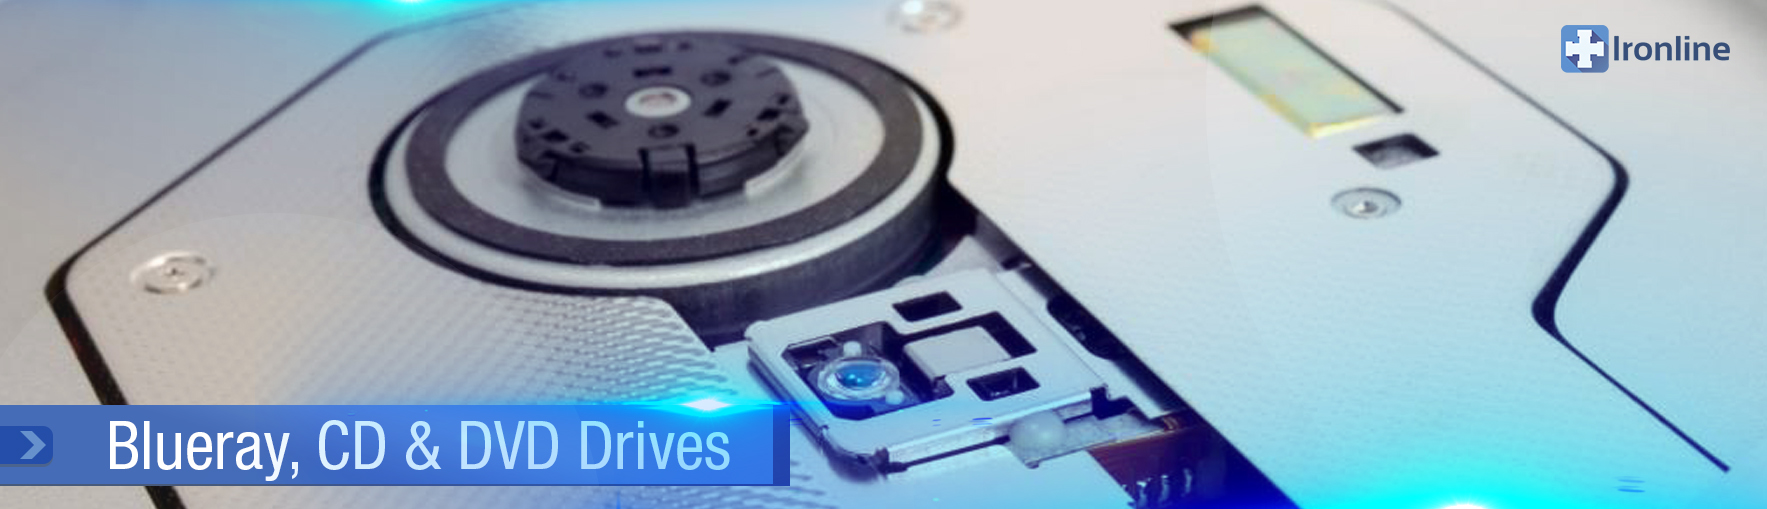 Blueray, CD & DVD Drives